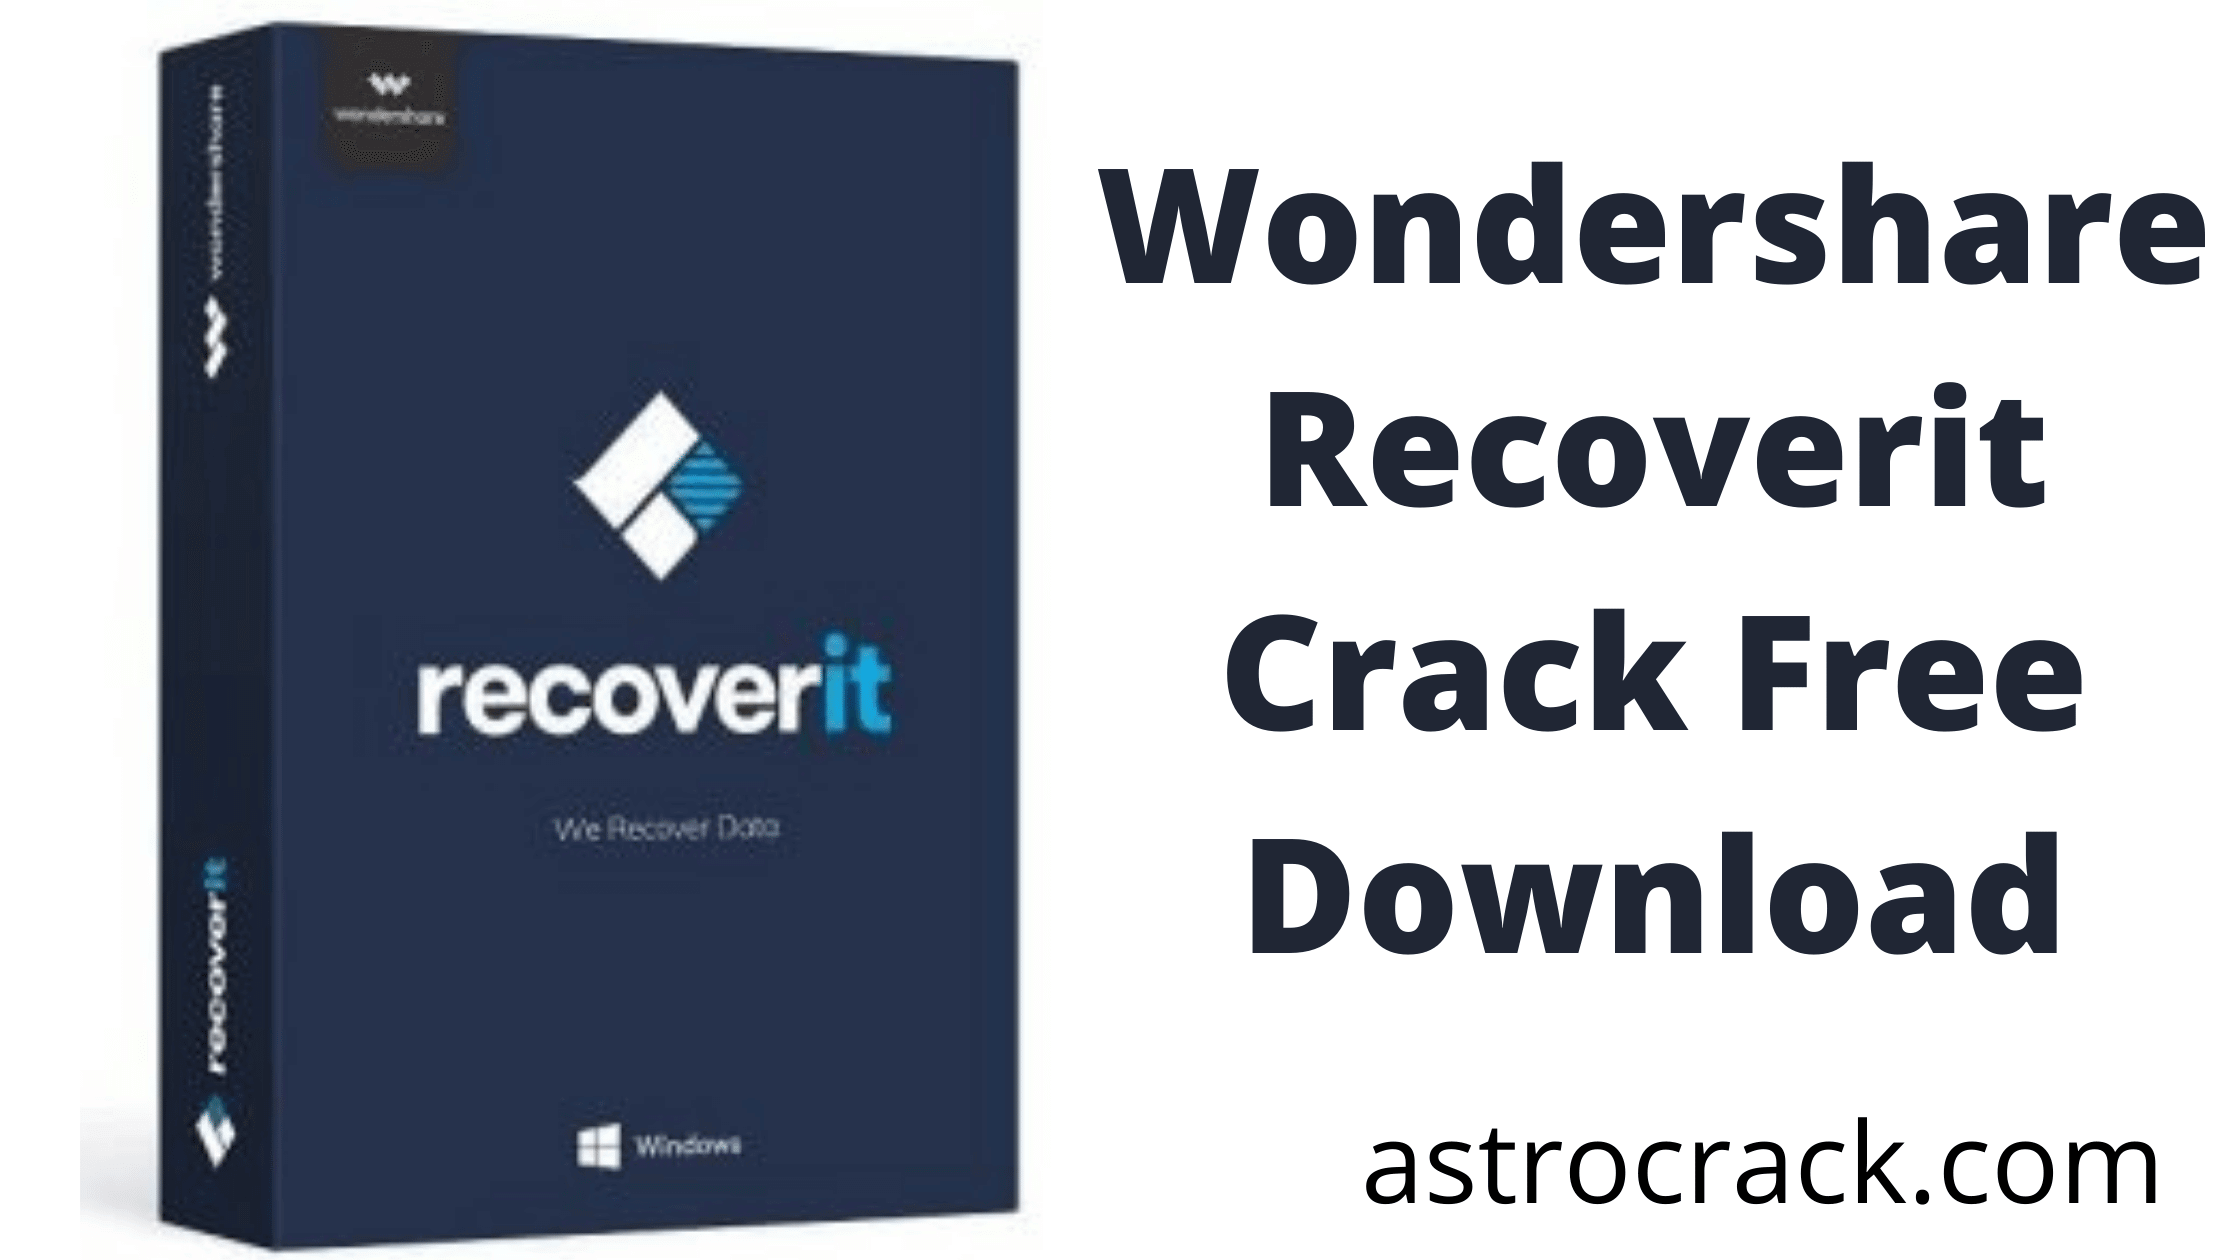 Wondershare Recoverit Crack recovers erased data that is lost and recuperates at a high misfortune rate.